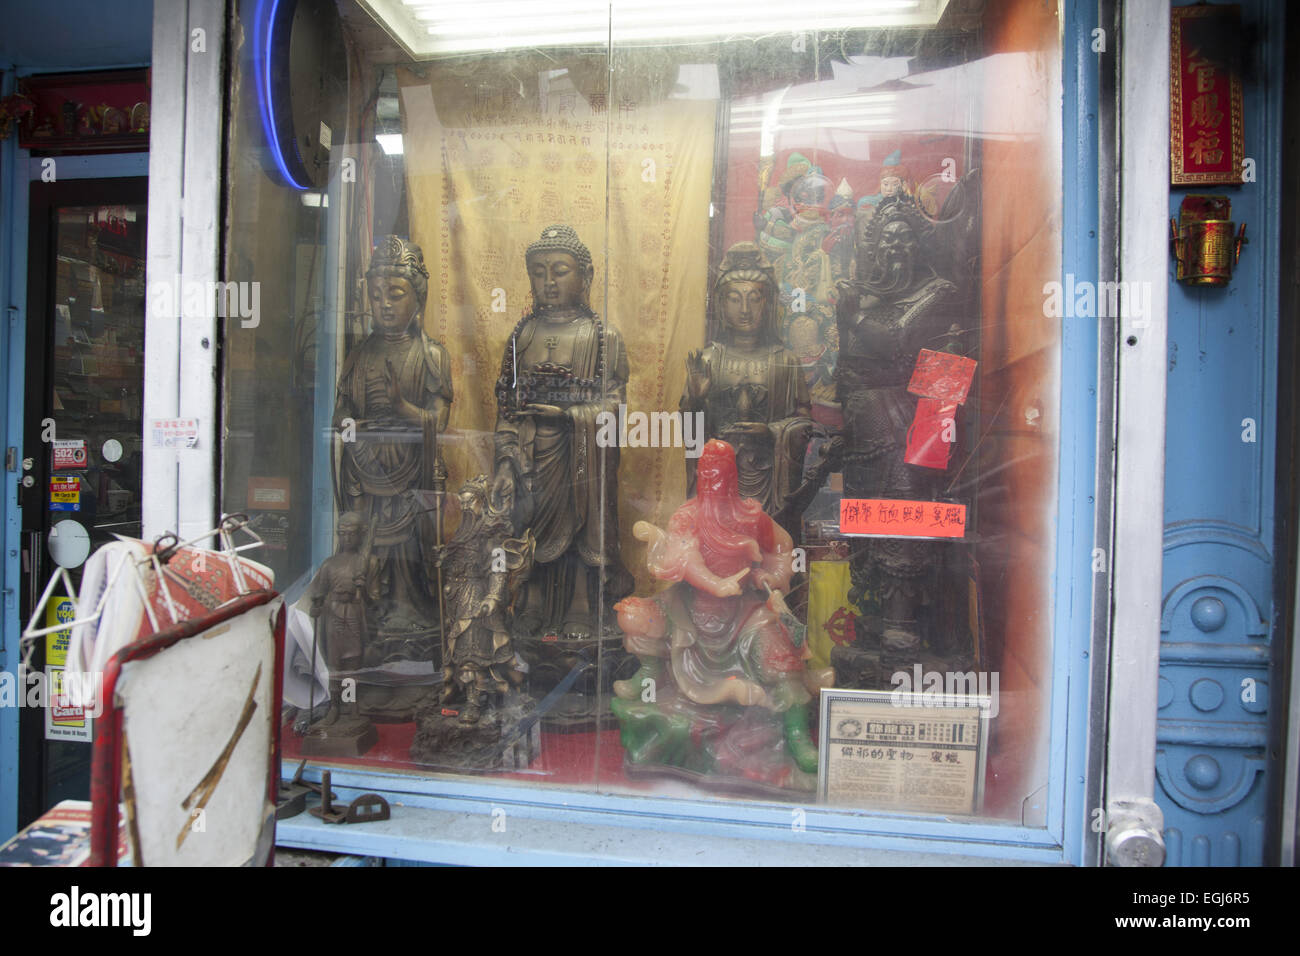 Store window in Chinatown with Buddhist & Taoist statuary. Canal Street, NYC. - Stock Image